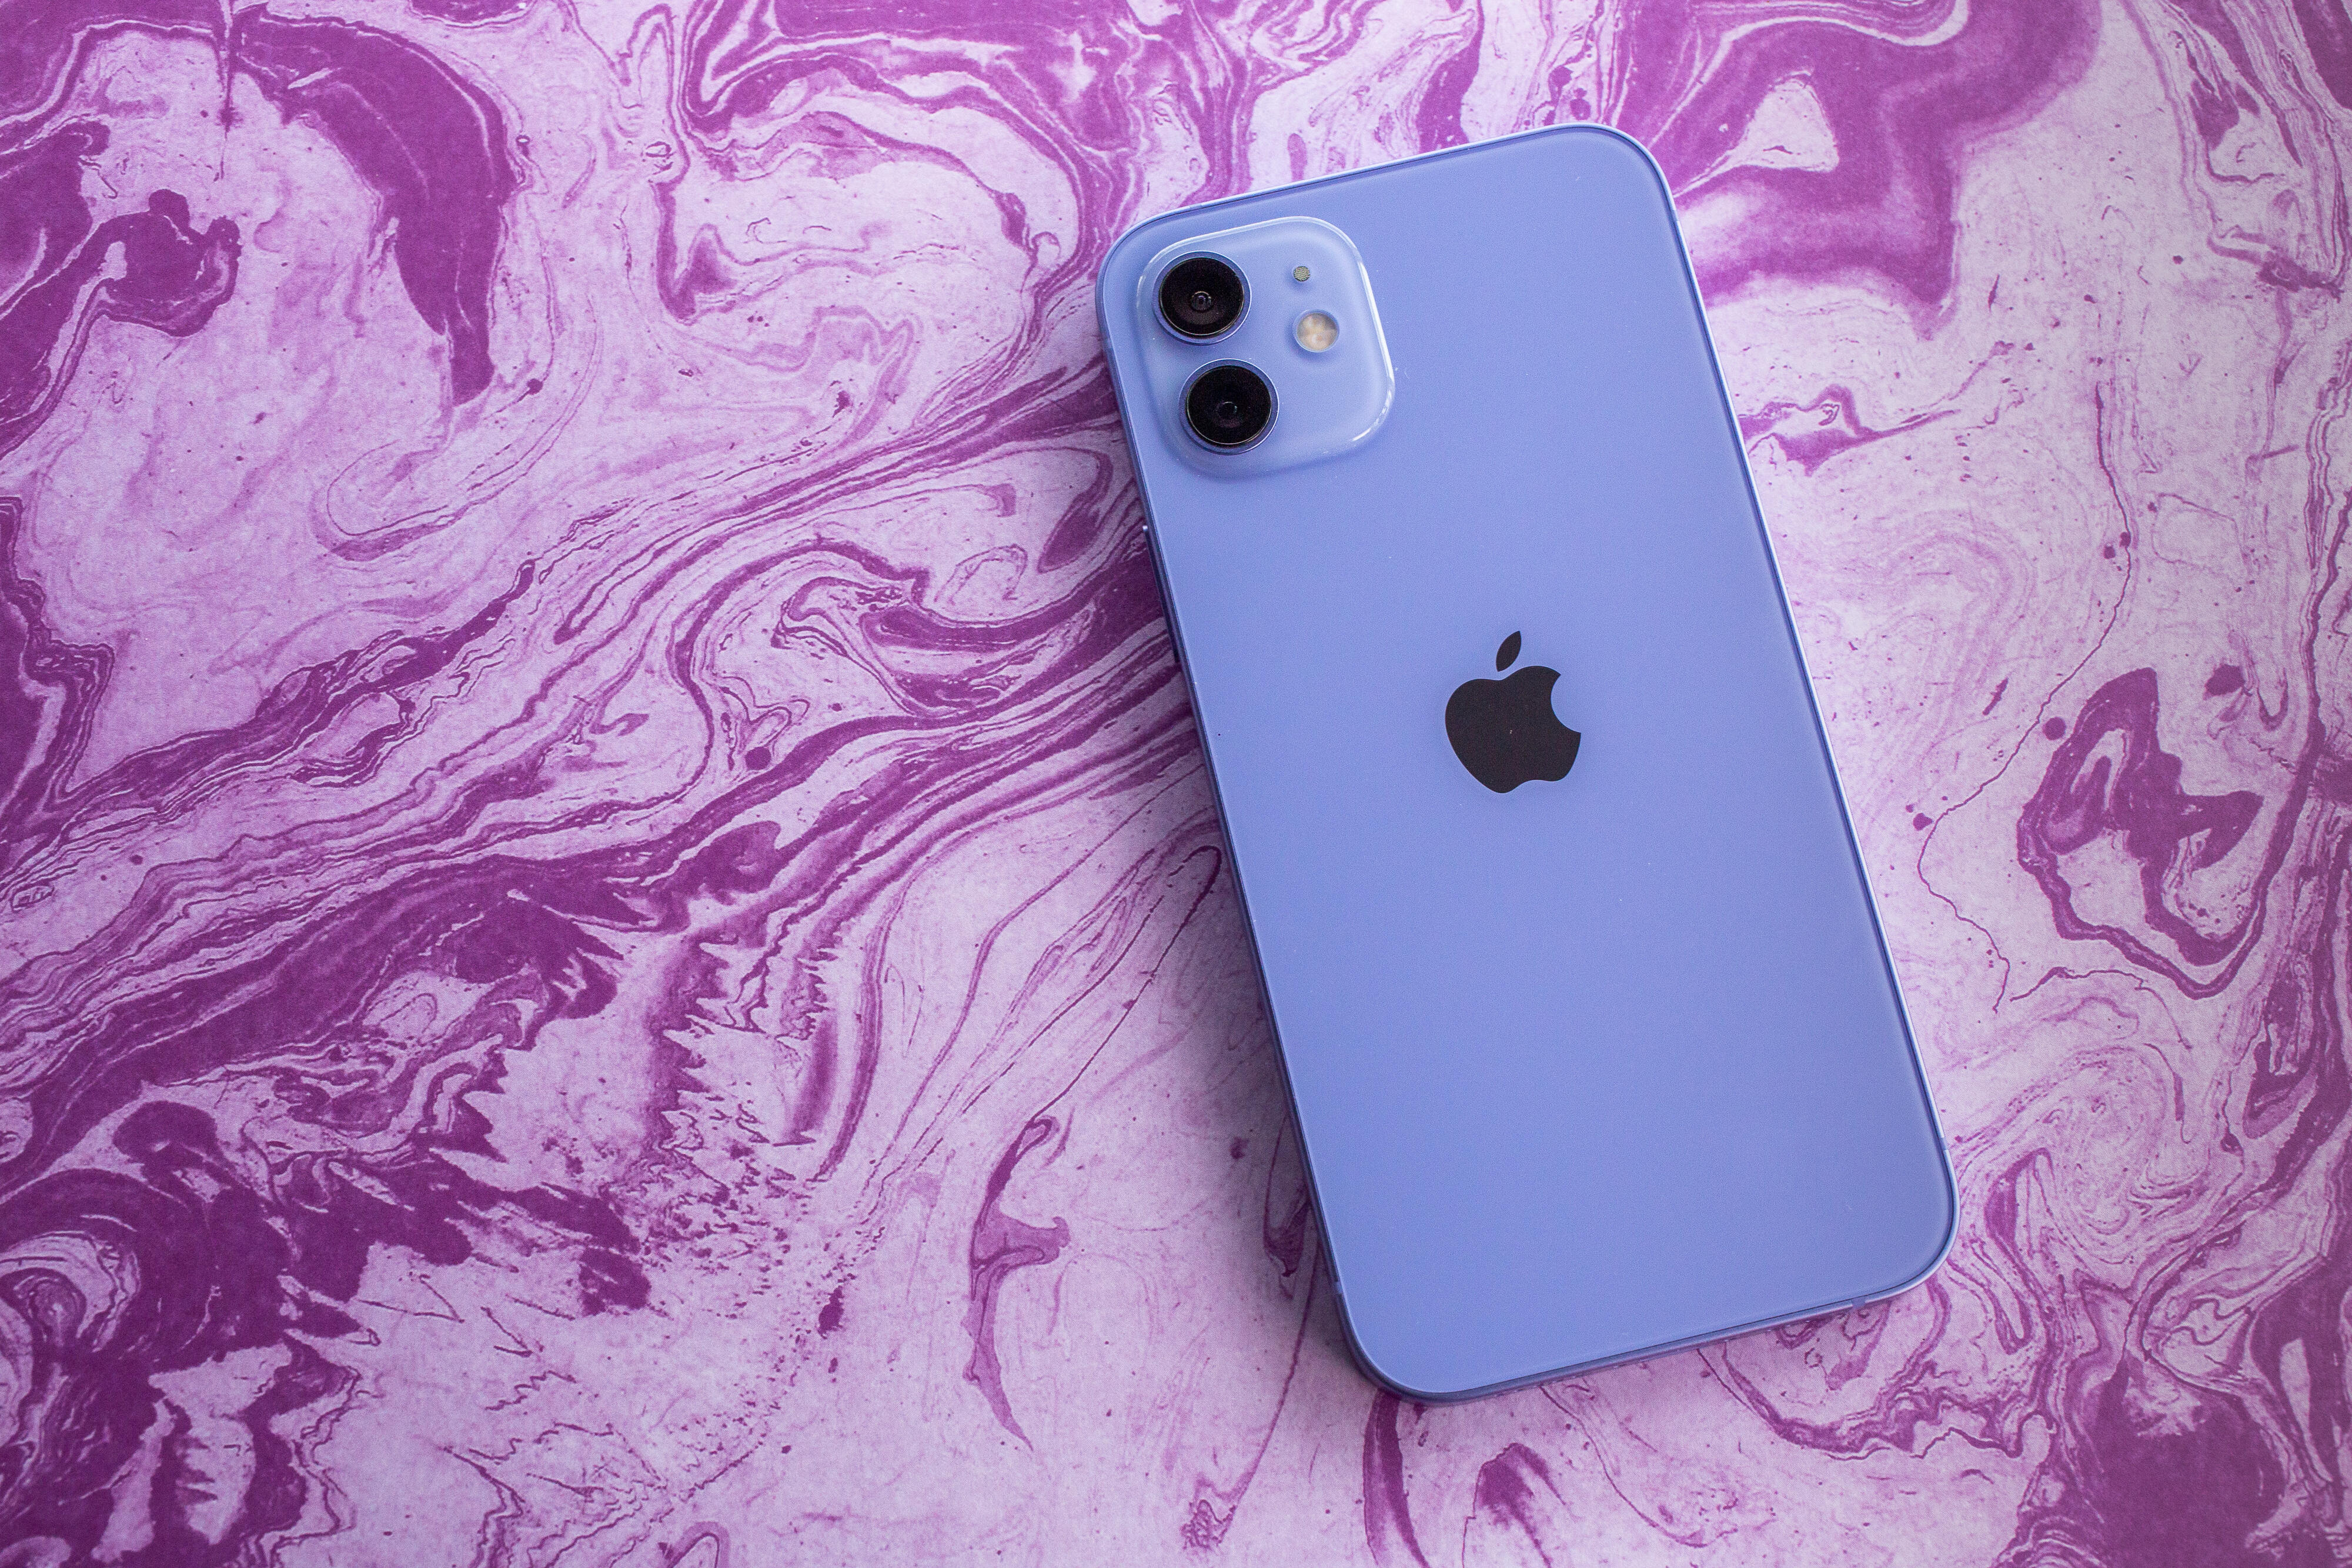 Apple iPhone sales jump 50% despite the shortage of chips in advance of Launch of iPhone 13 13 in Autumn